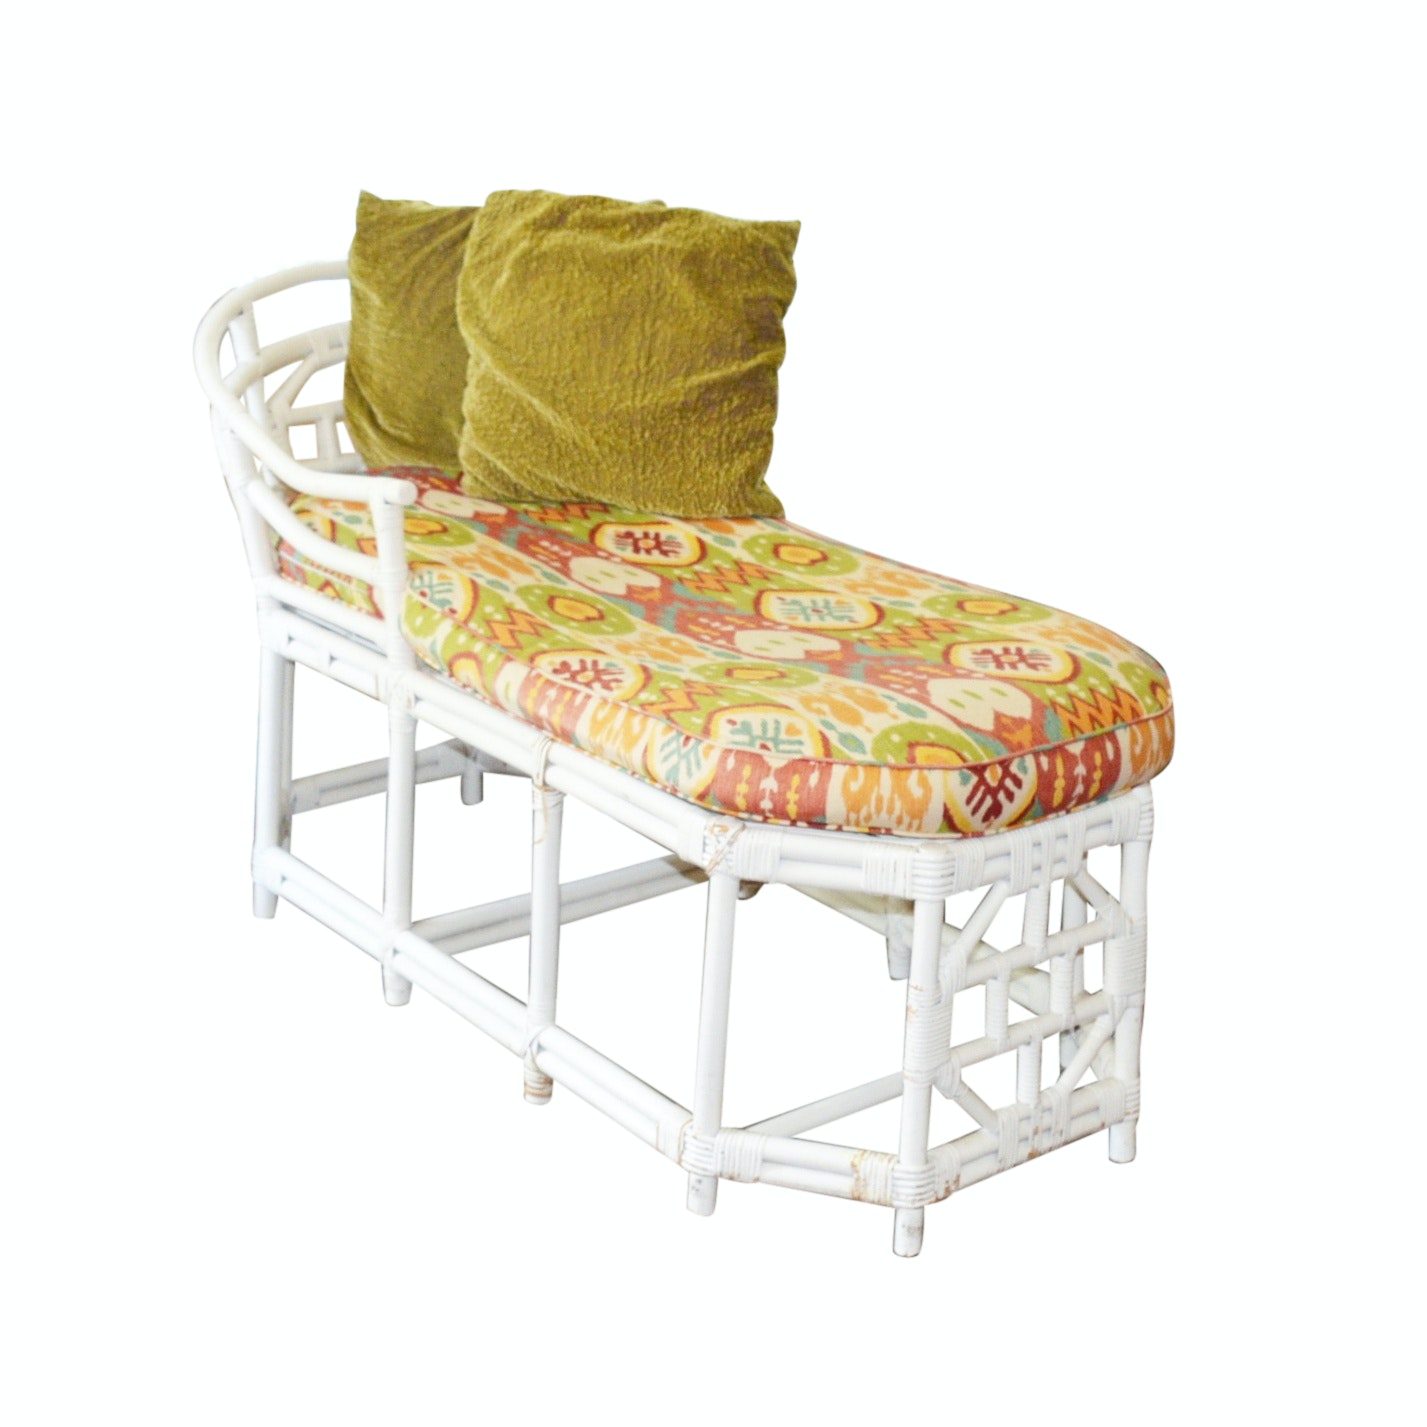 Rattan Chaise Lounger with Custom Cushion and Dransfield & Ross Velvet Pillows